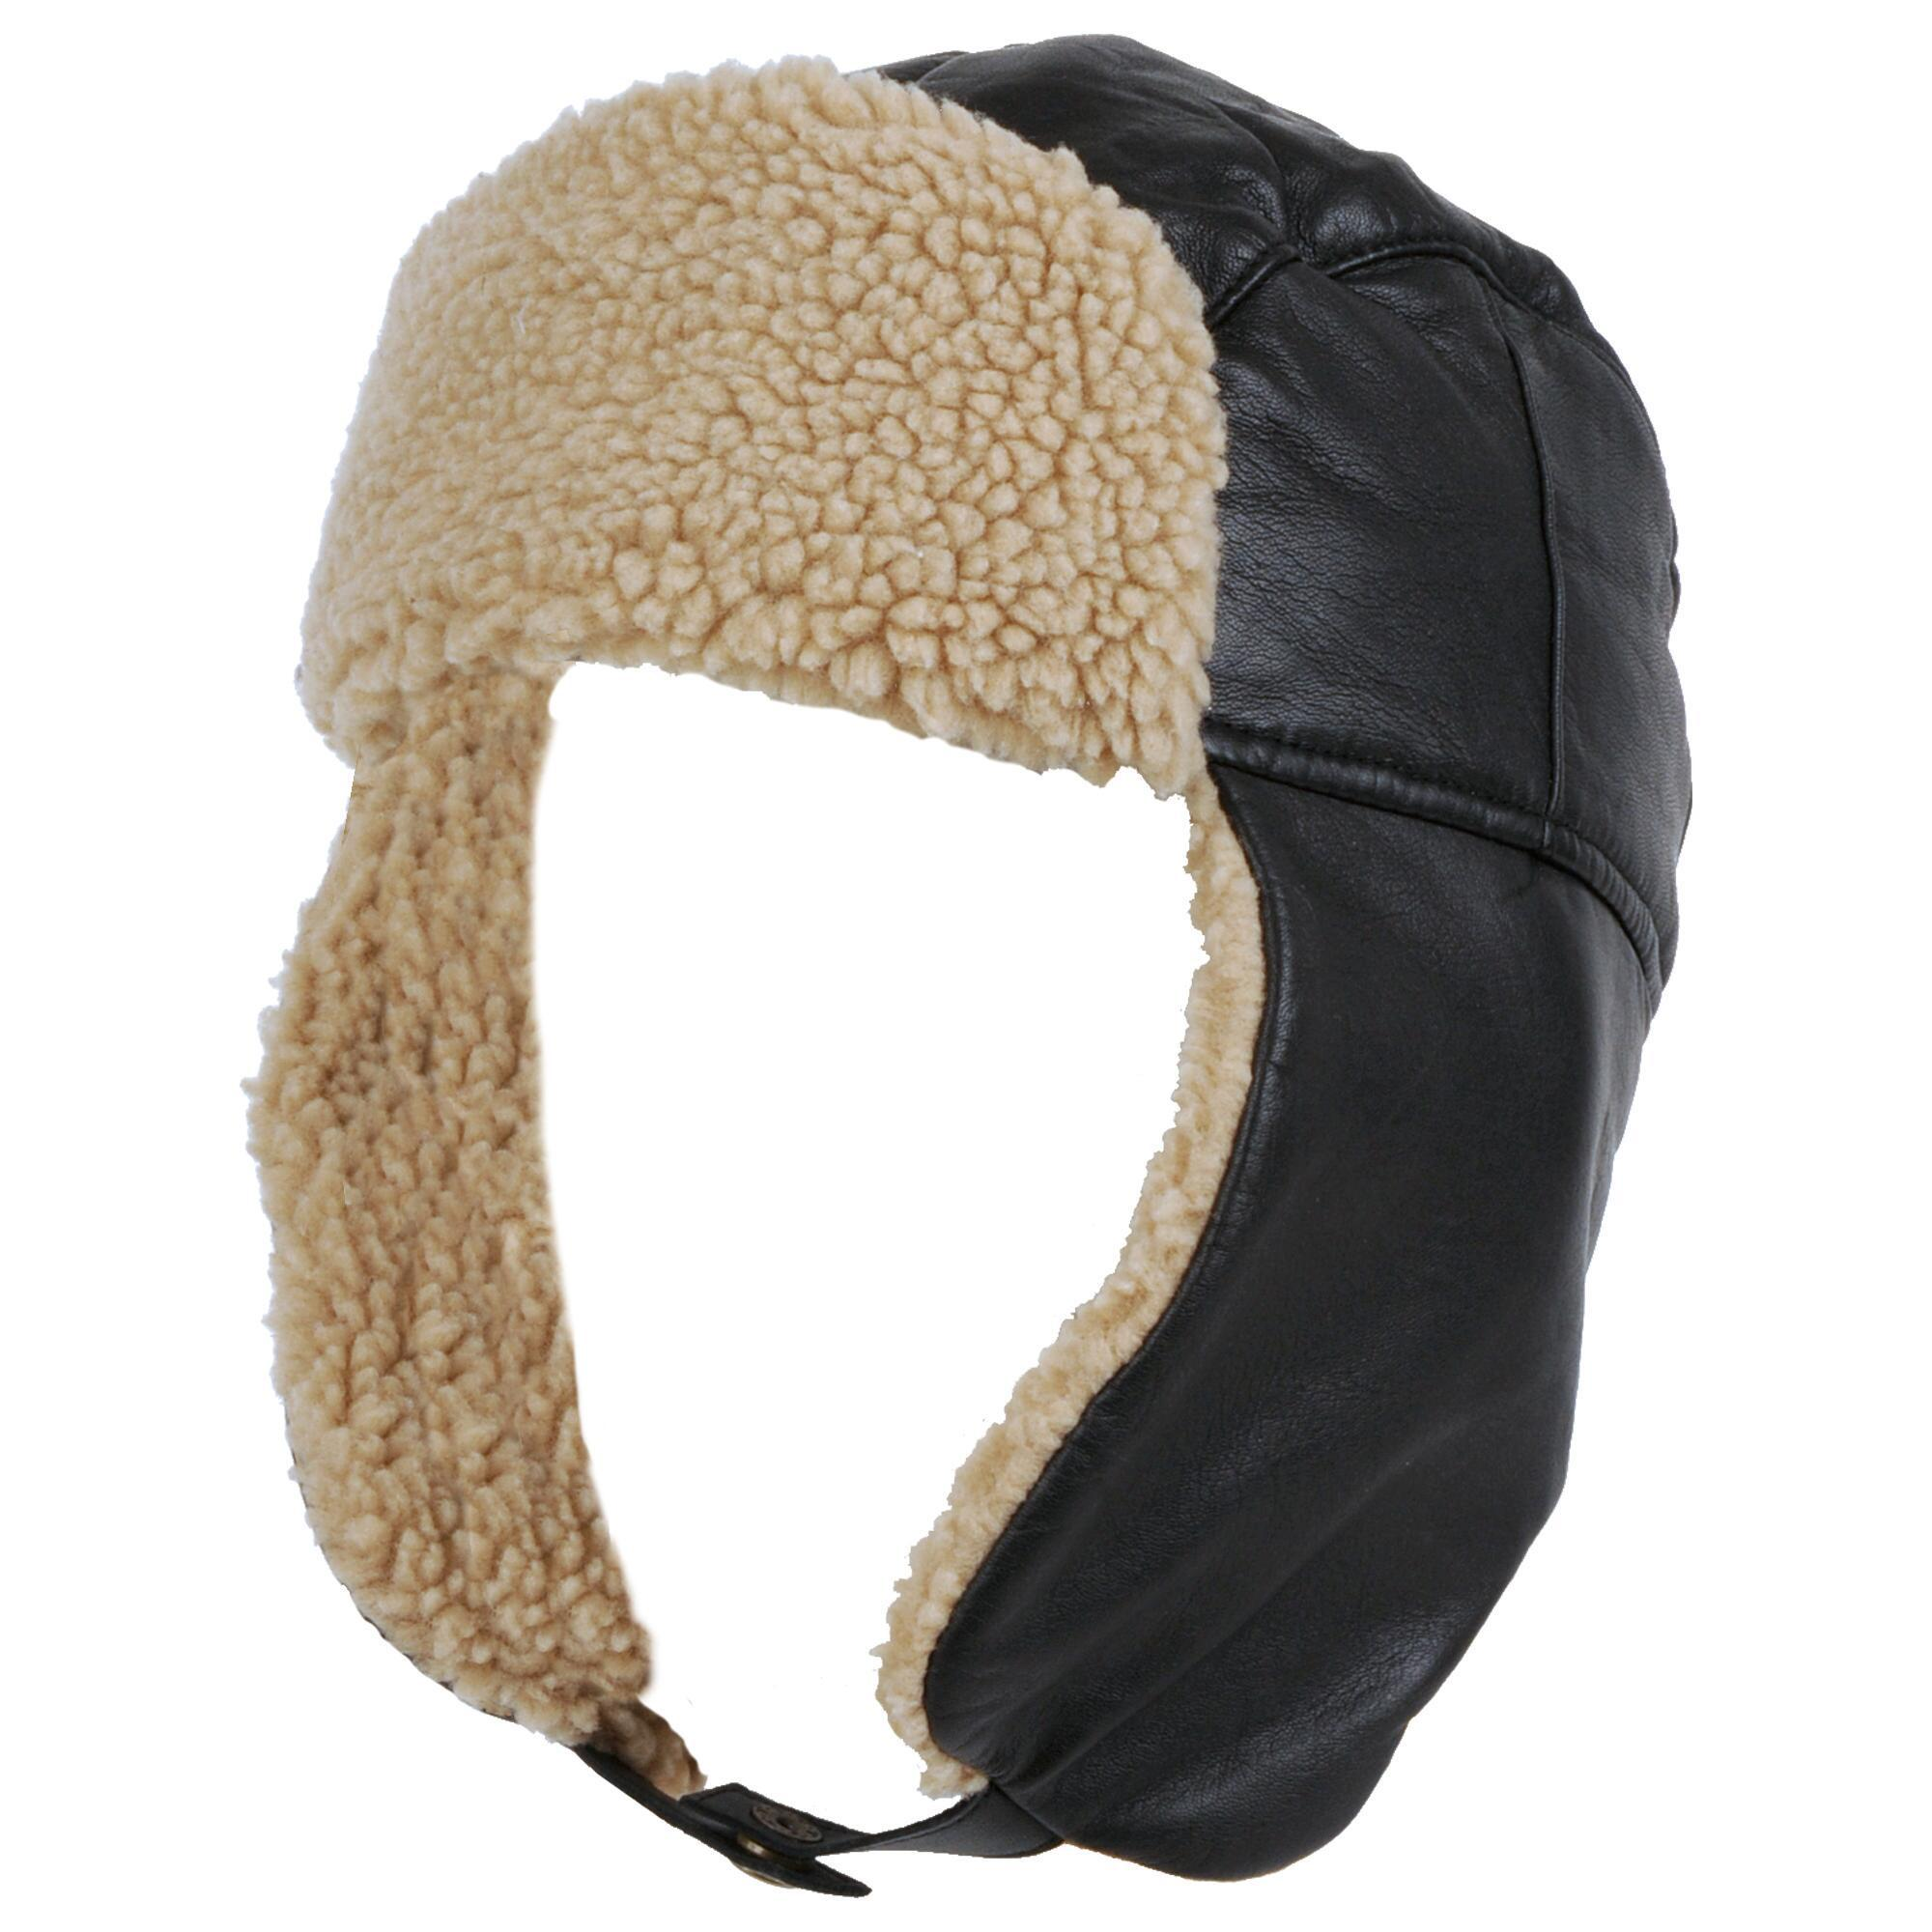 92a43125cc866 Wilsons Leather Genuine Leather Trapper Hat W  Faux-sherpa Trim in ...